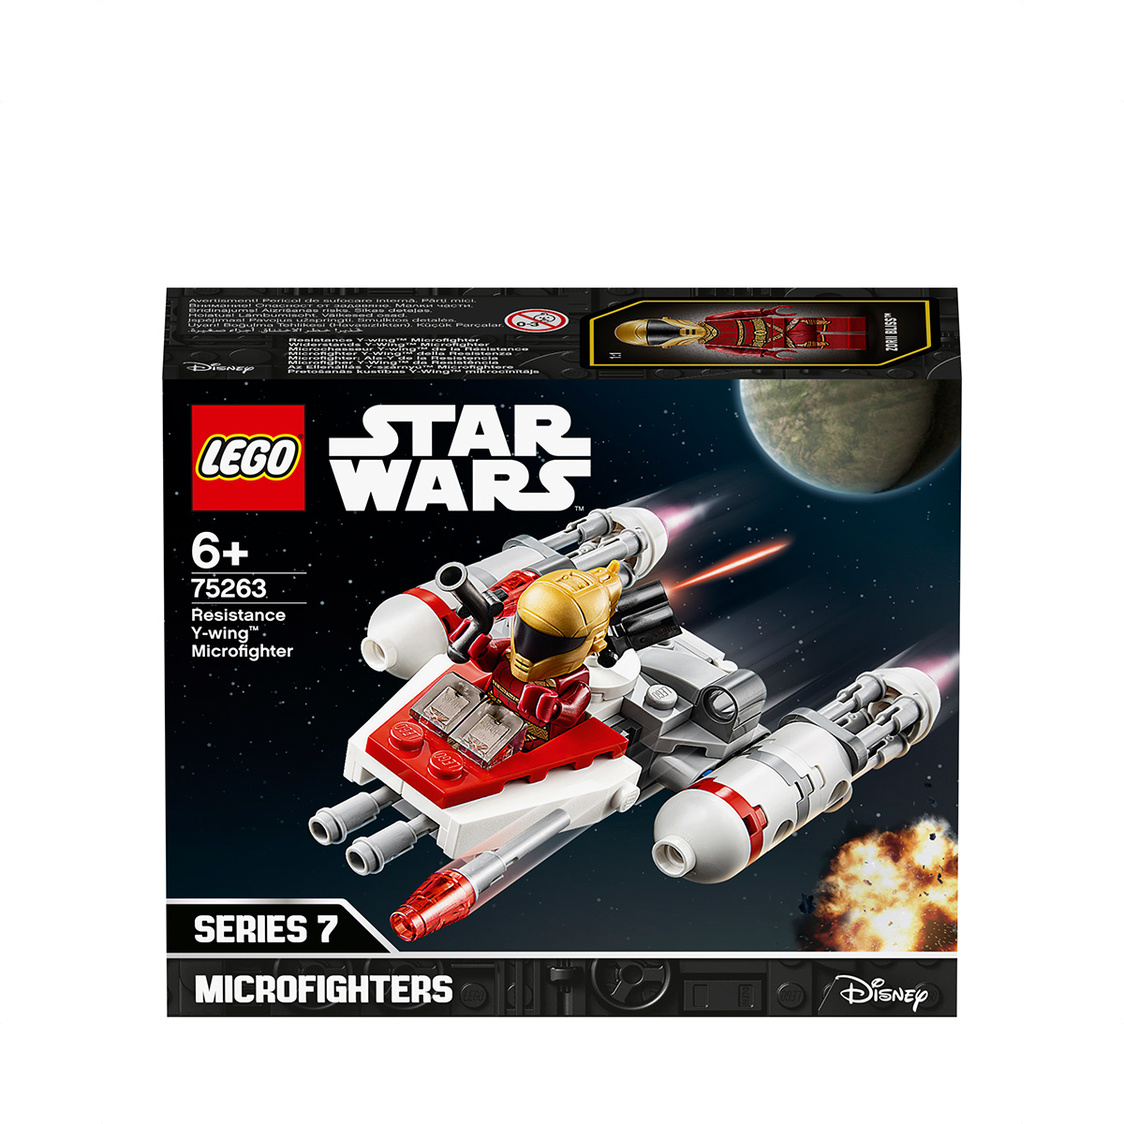 Resistance Ywing Microfighter 75263